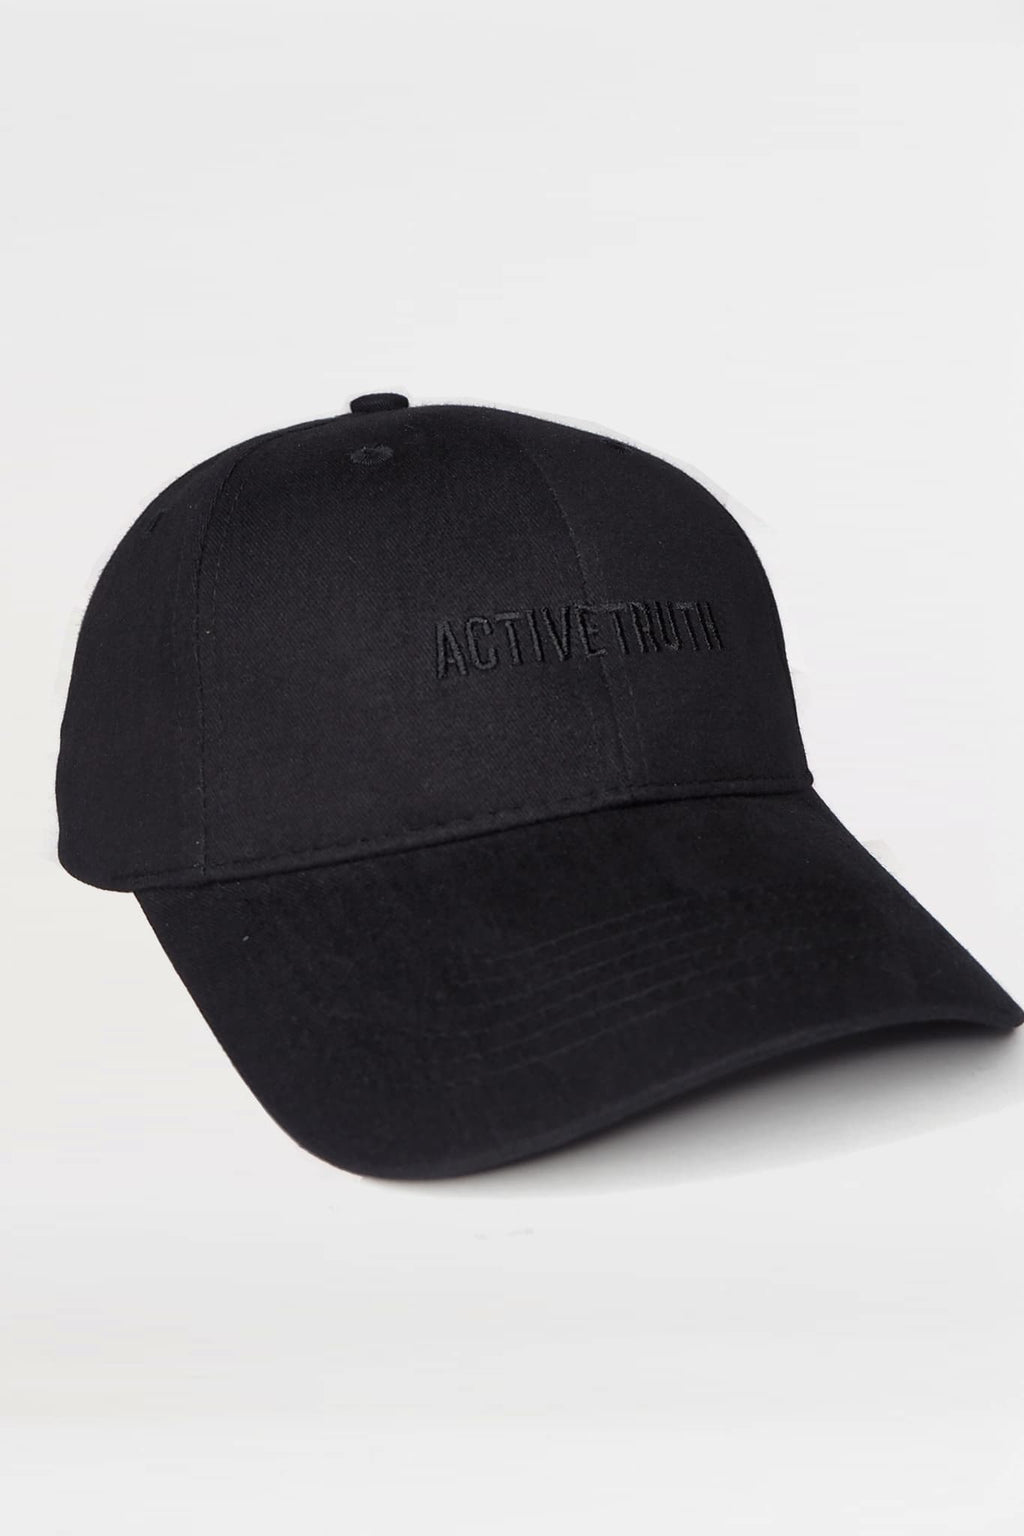 Active Baseball Cap - Black from Active Truth USA